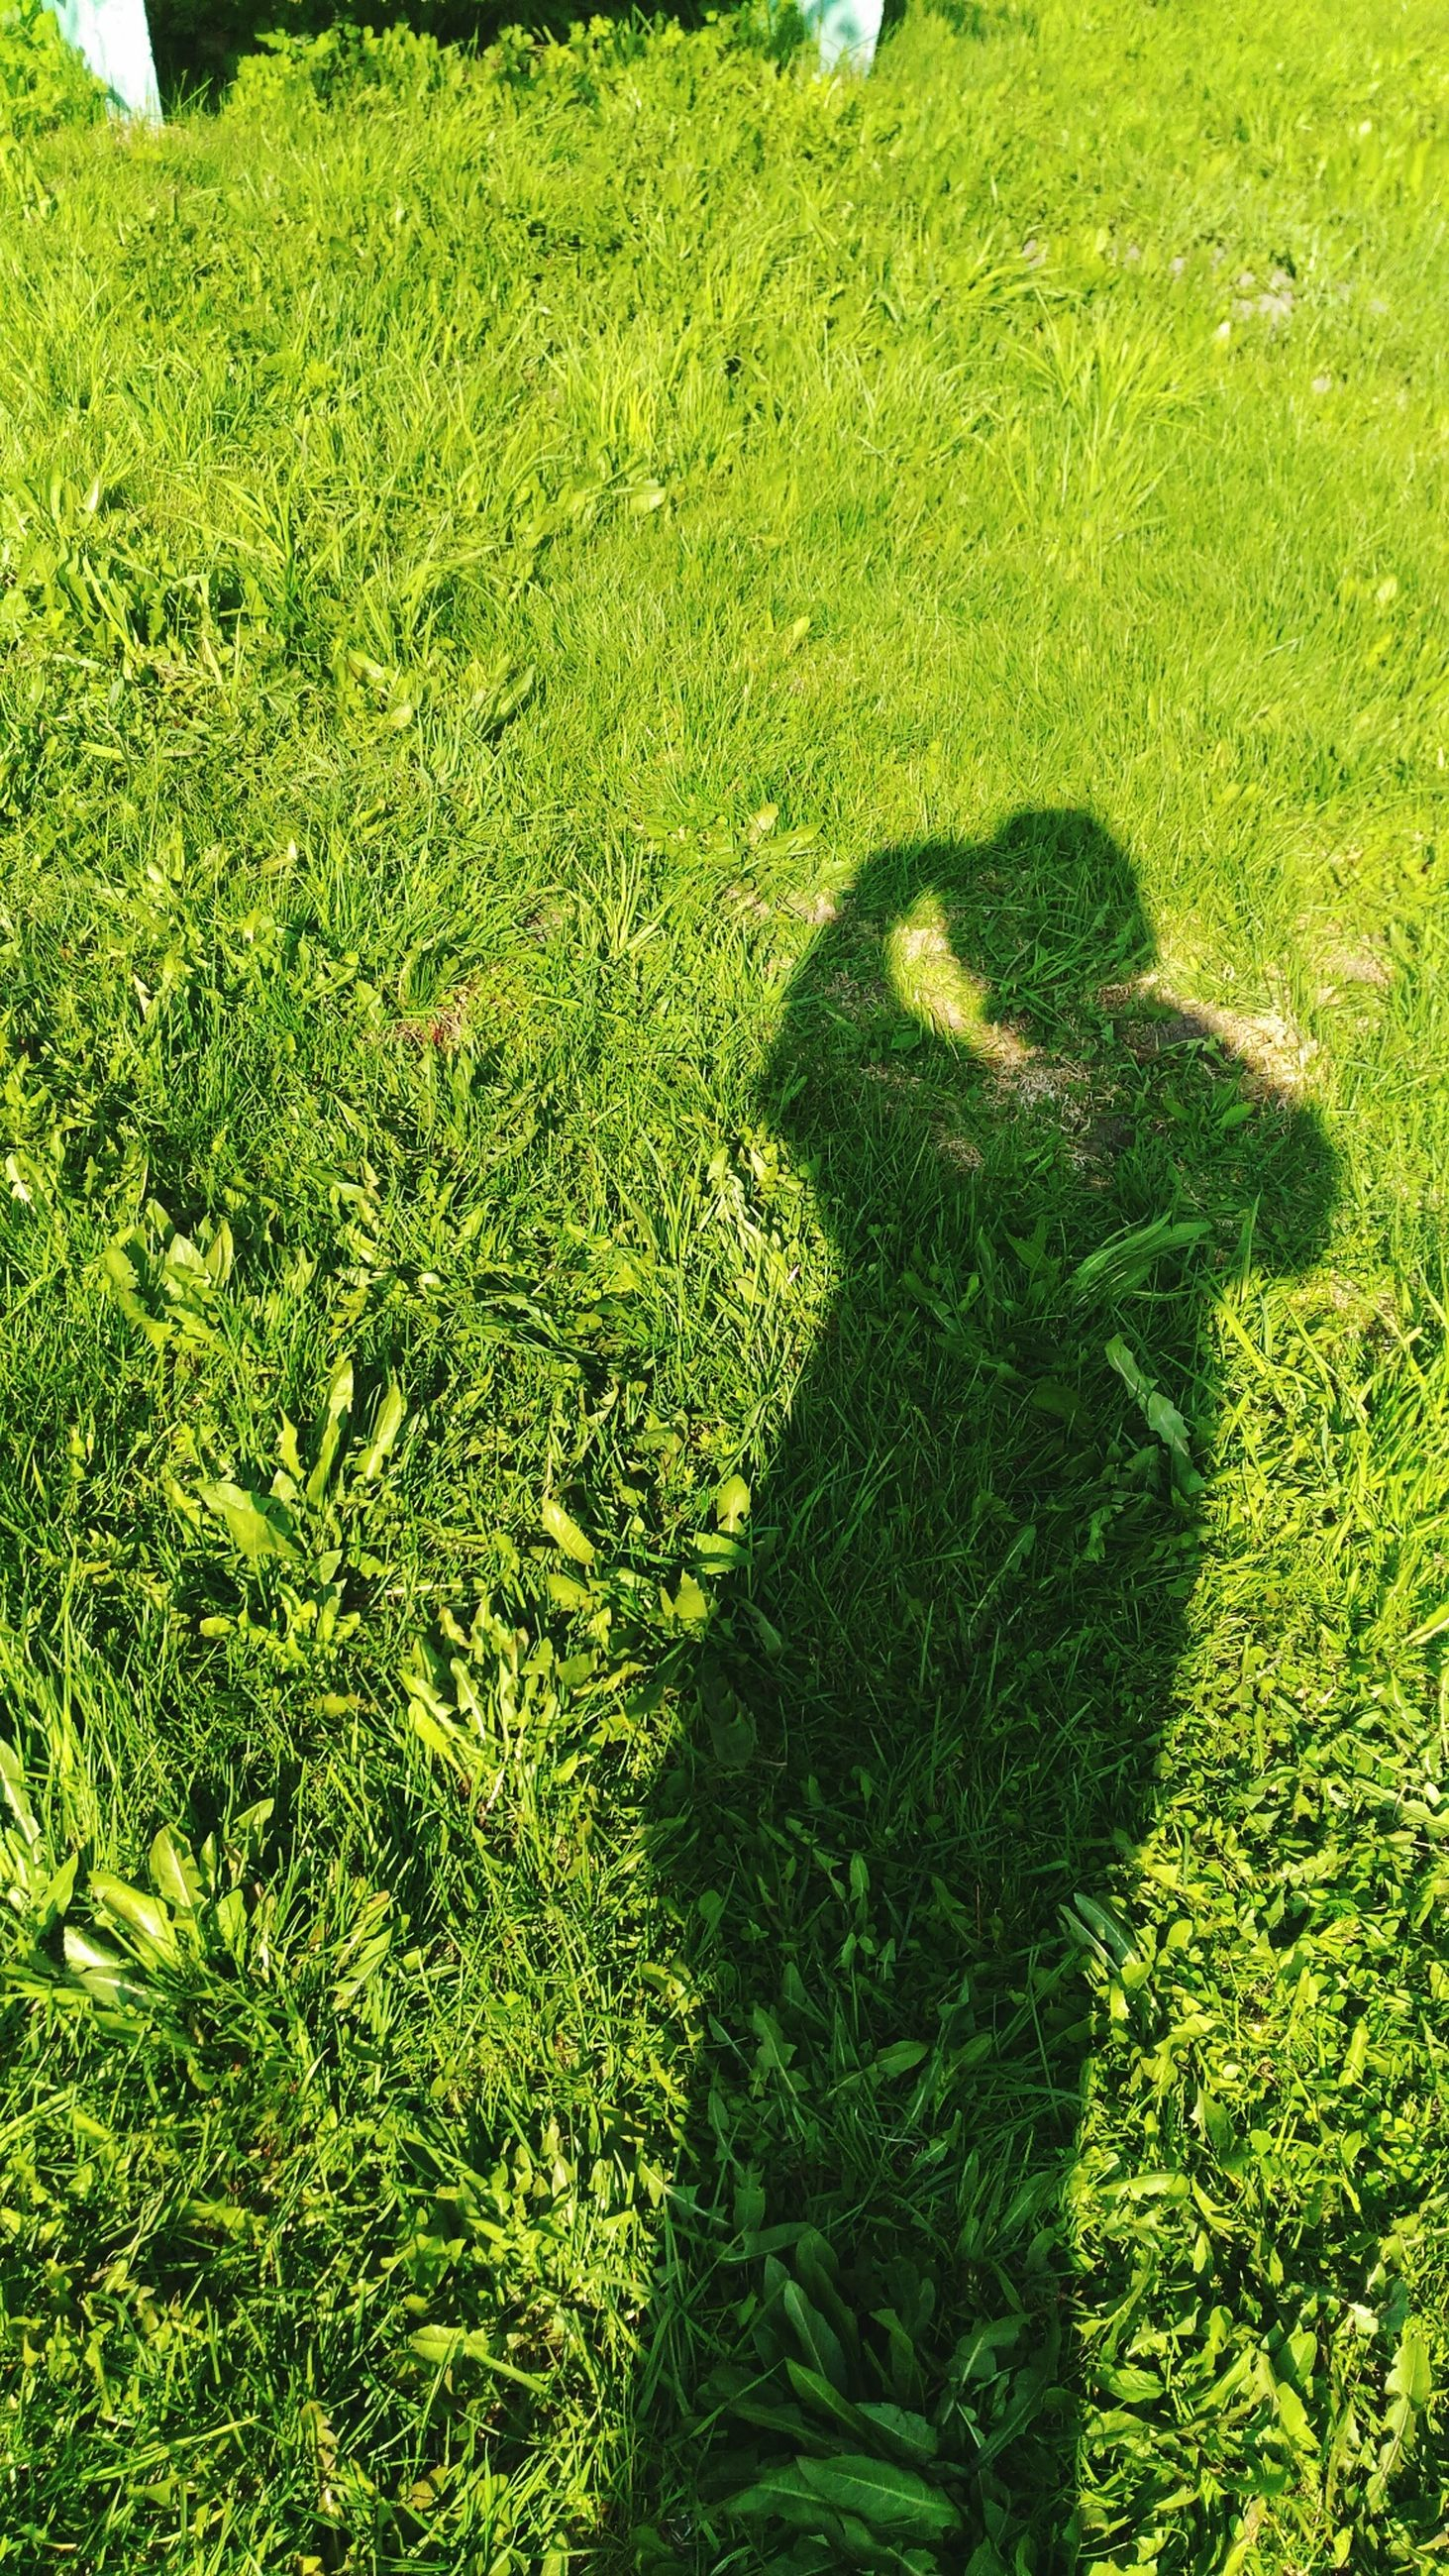 grass, green color, grassy, high angle view, field, shadow, lifestyles, growth, leisure activity, sunlight, men, lawn, plant, standing, day, outdoors, unrecognizable person, focus on shadow